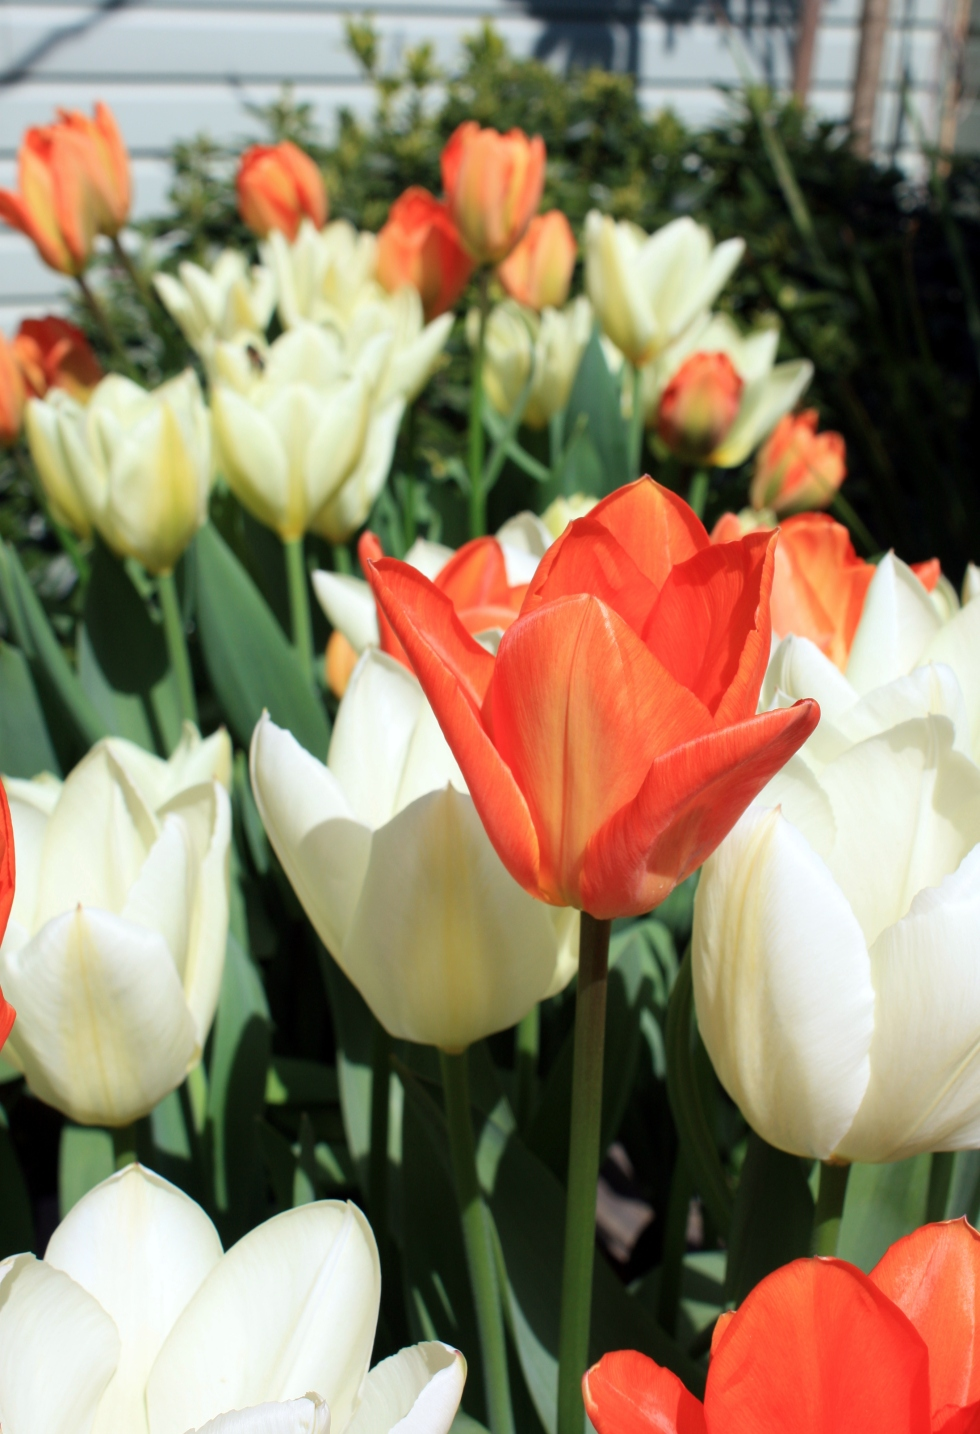 Tulips 'Purissima' and 'Orange Emperor', April 2013